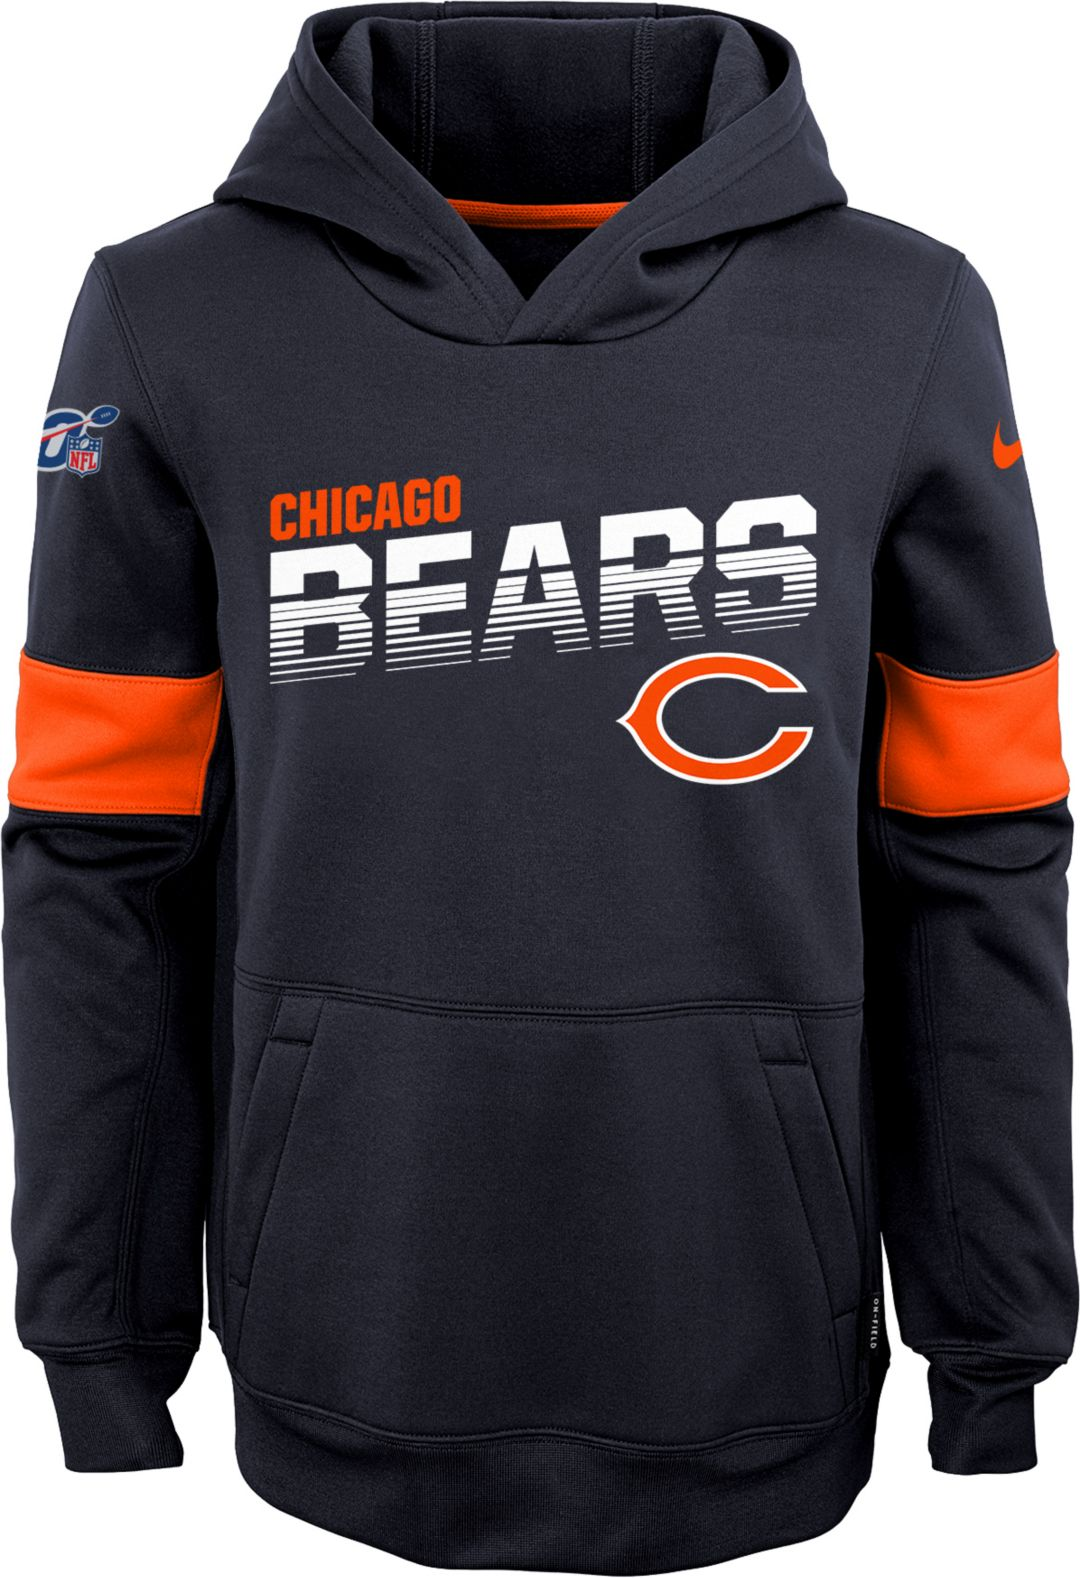 quality products shop best sellers best wholesaler Nike Youth Chicago Bears 100th Sideline Therma-FIT Navy Pullover Hoodie